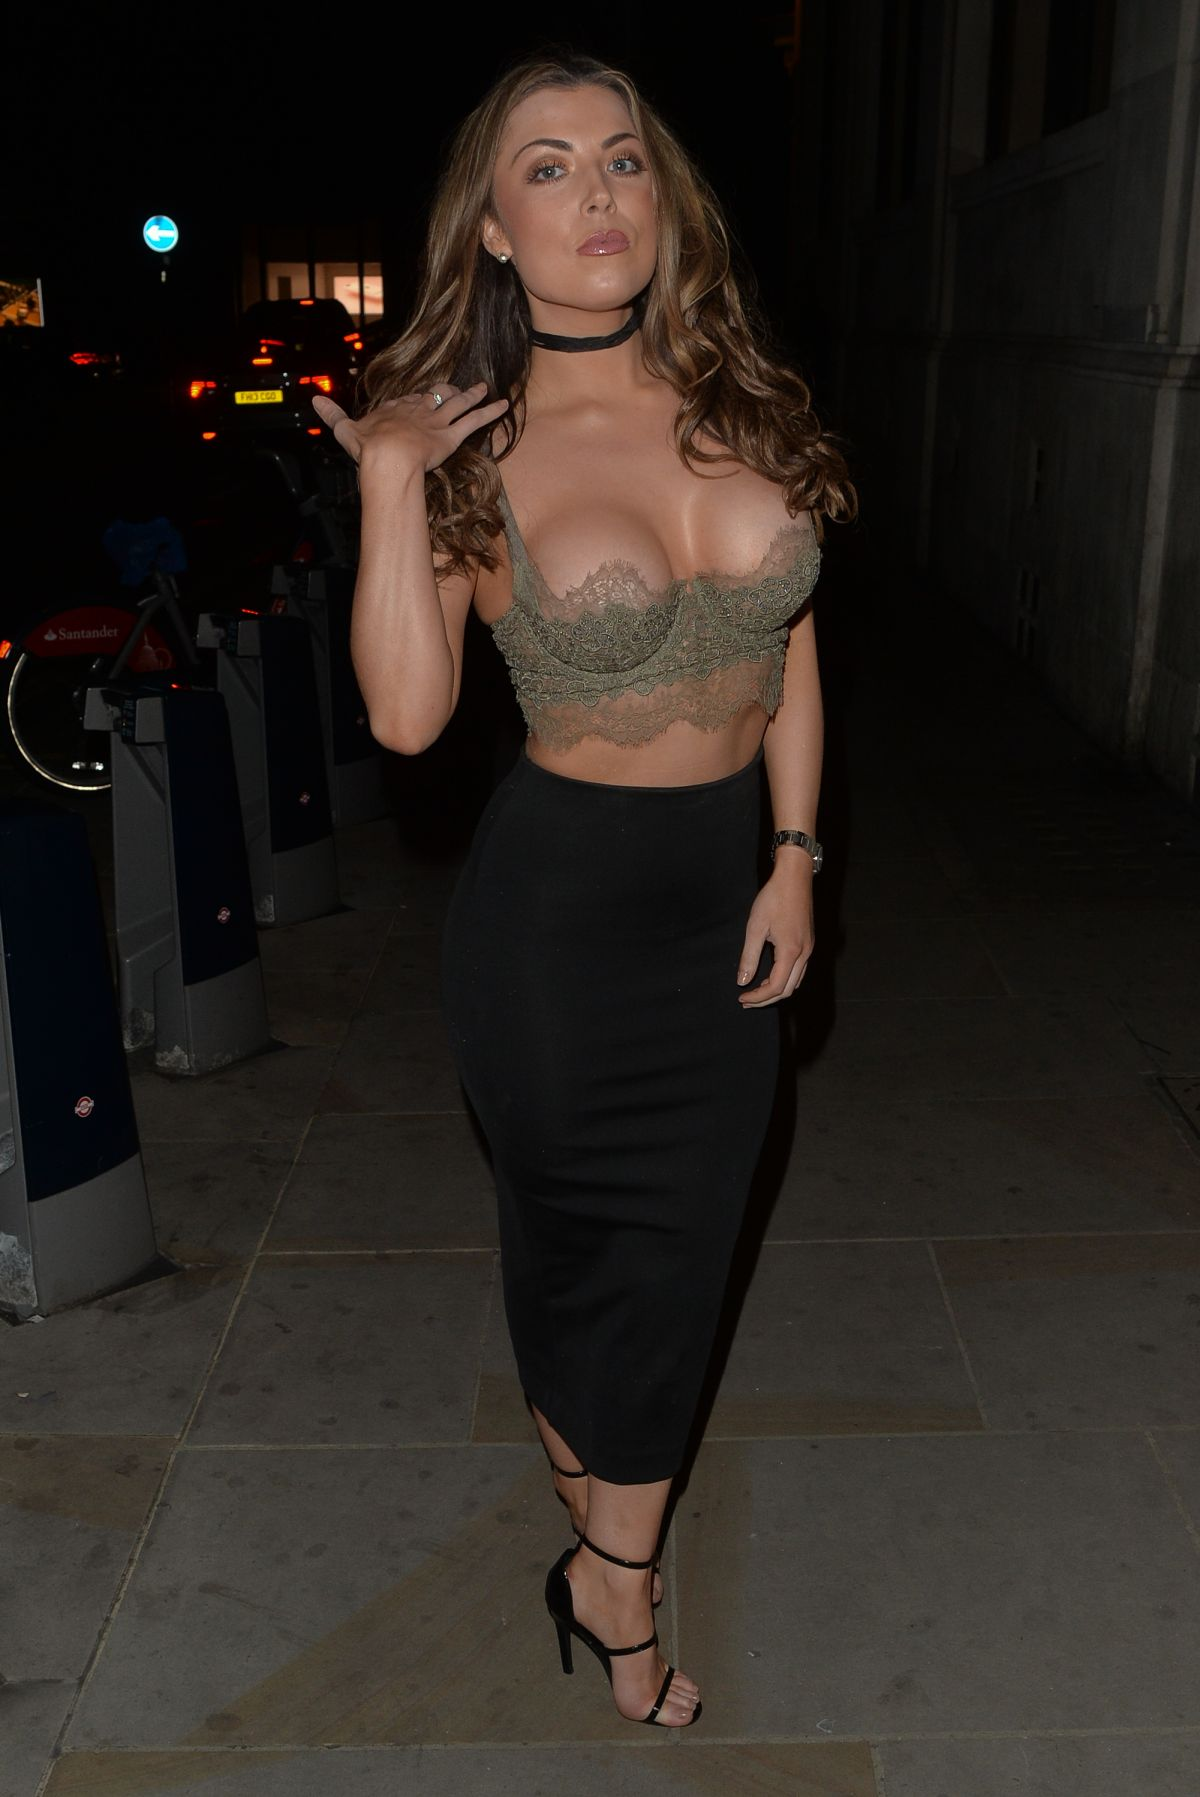 ABIGAIL CLARKE at Mason Nightclub in London 04/23/2016